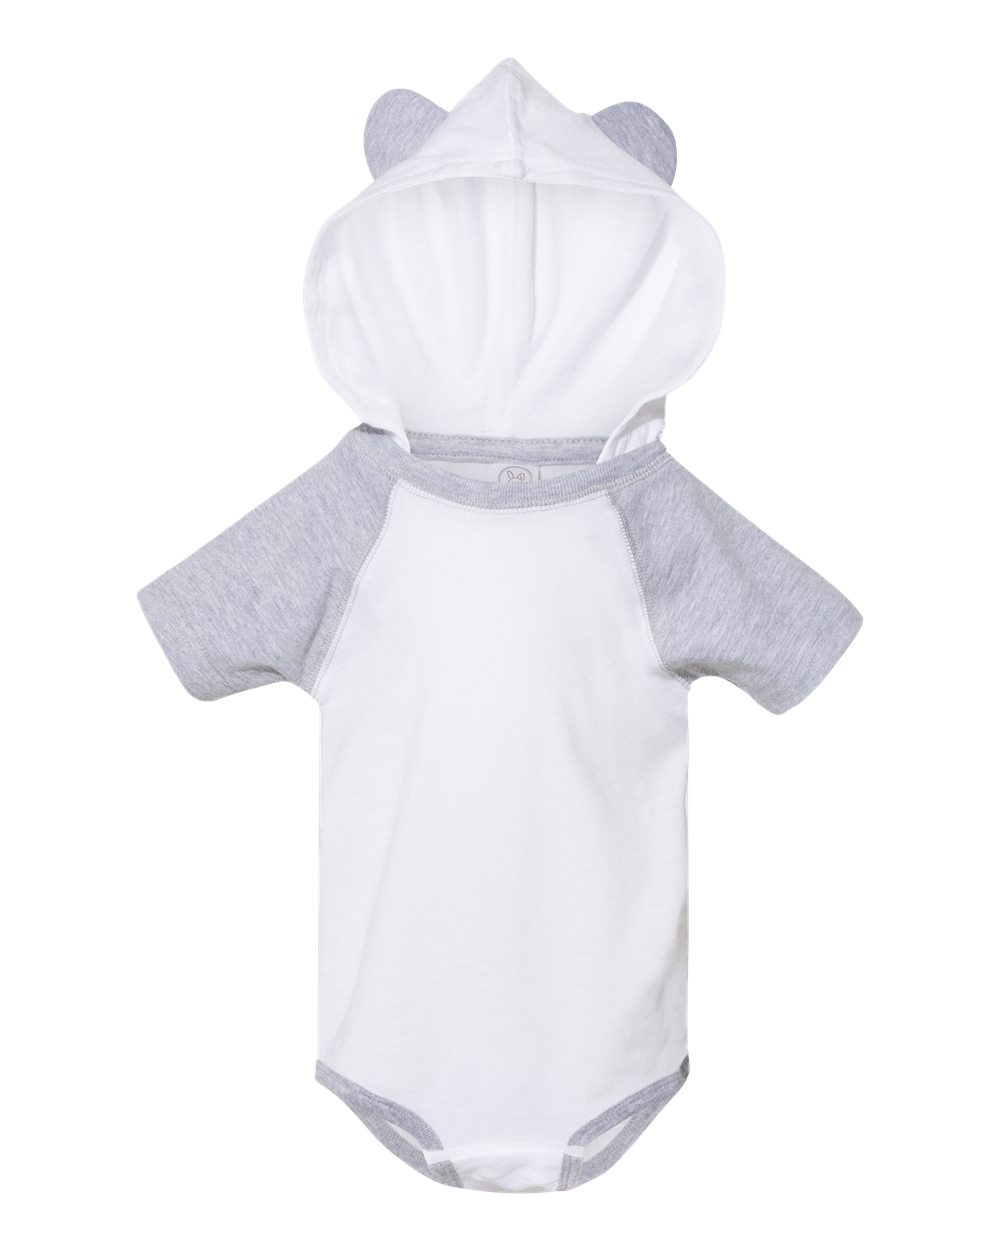 Rabbit Skins 4417 - Fine Jersey Infant Short Sleeve Raglan Bodysuit with Hood & Ears